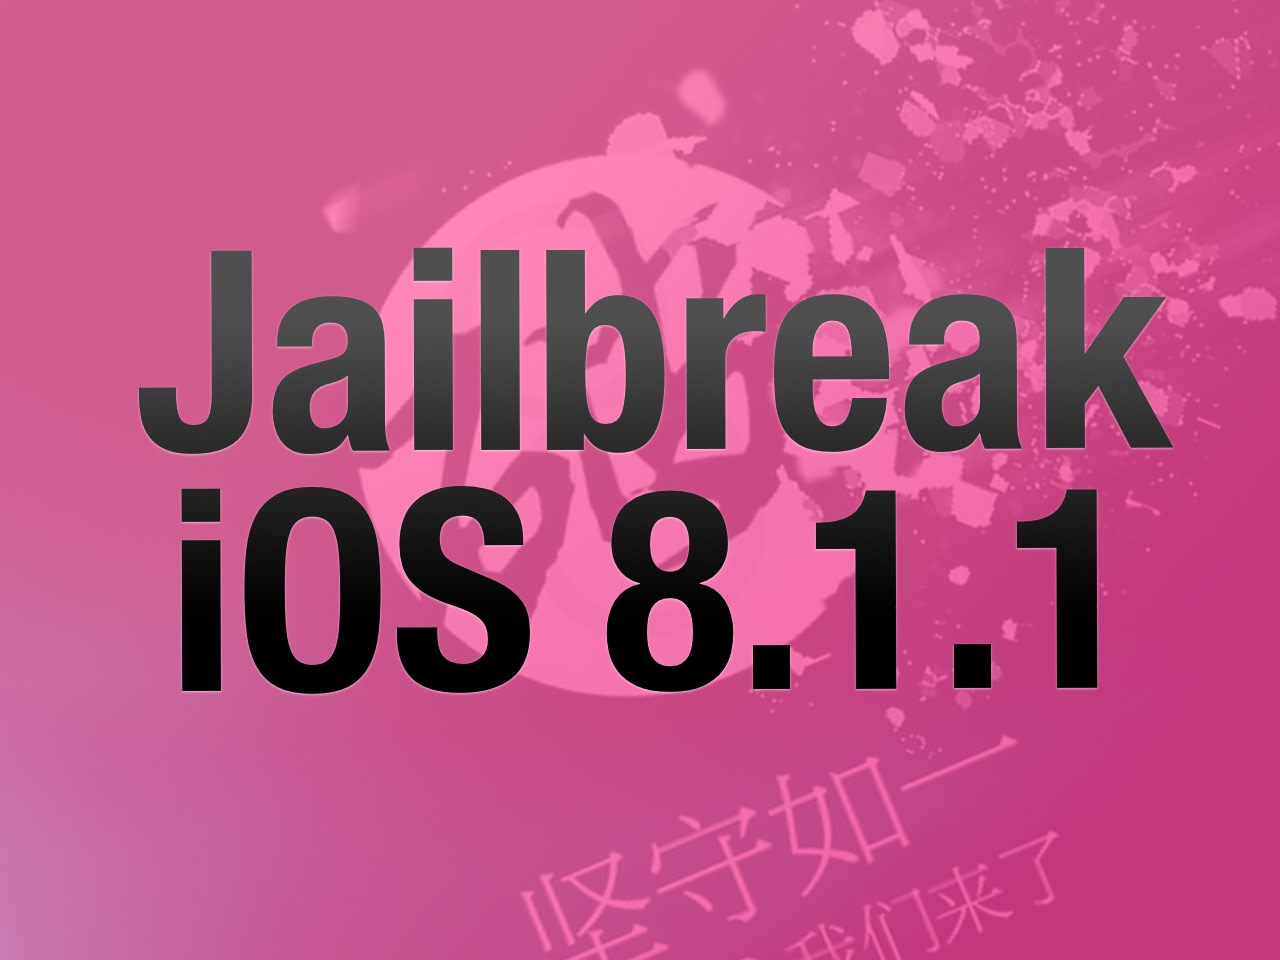 iOS 8.1.1 has already been jailbroken.